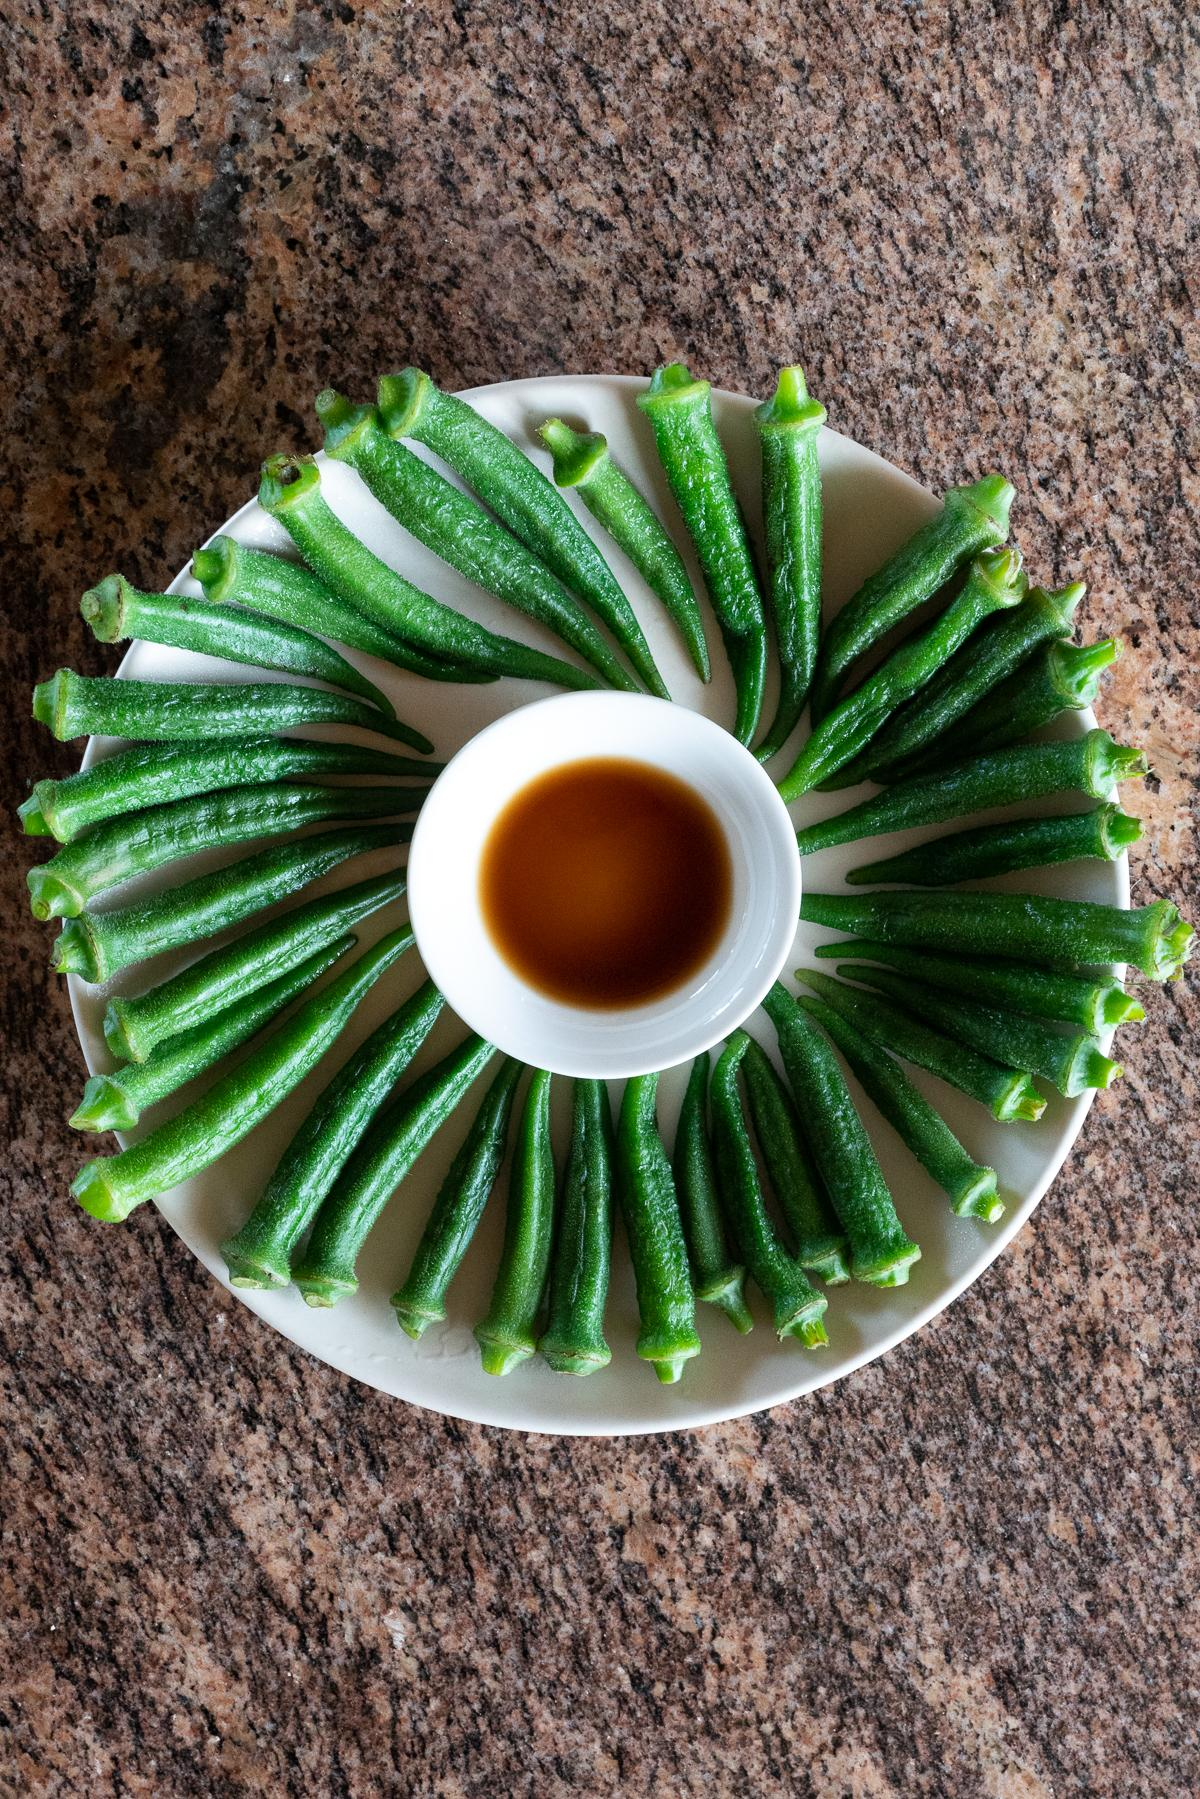 A plate of boiled okra with a small dish of soy sauce for dipping.